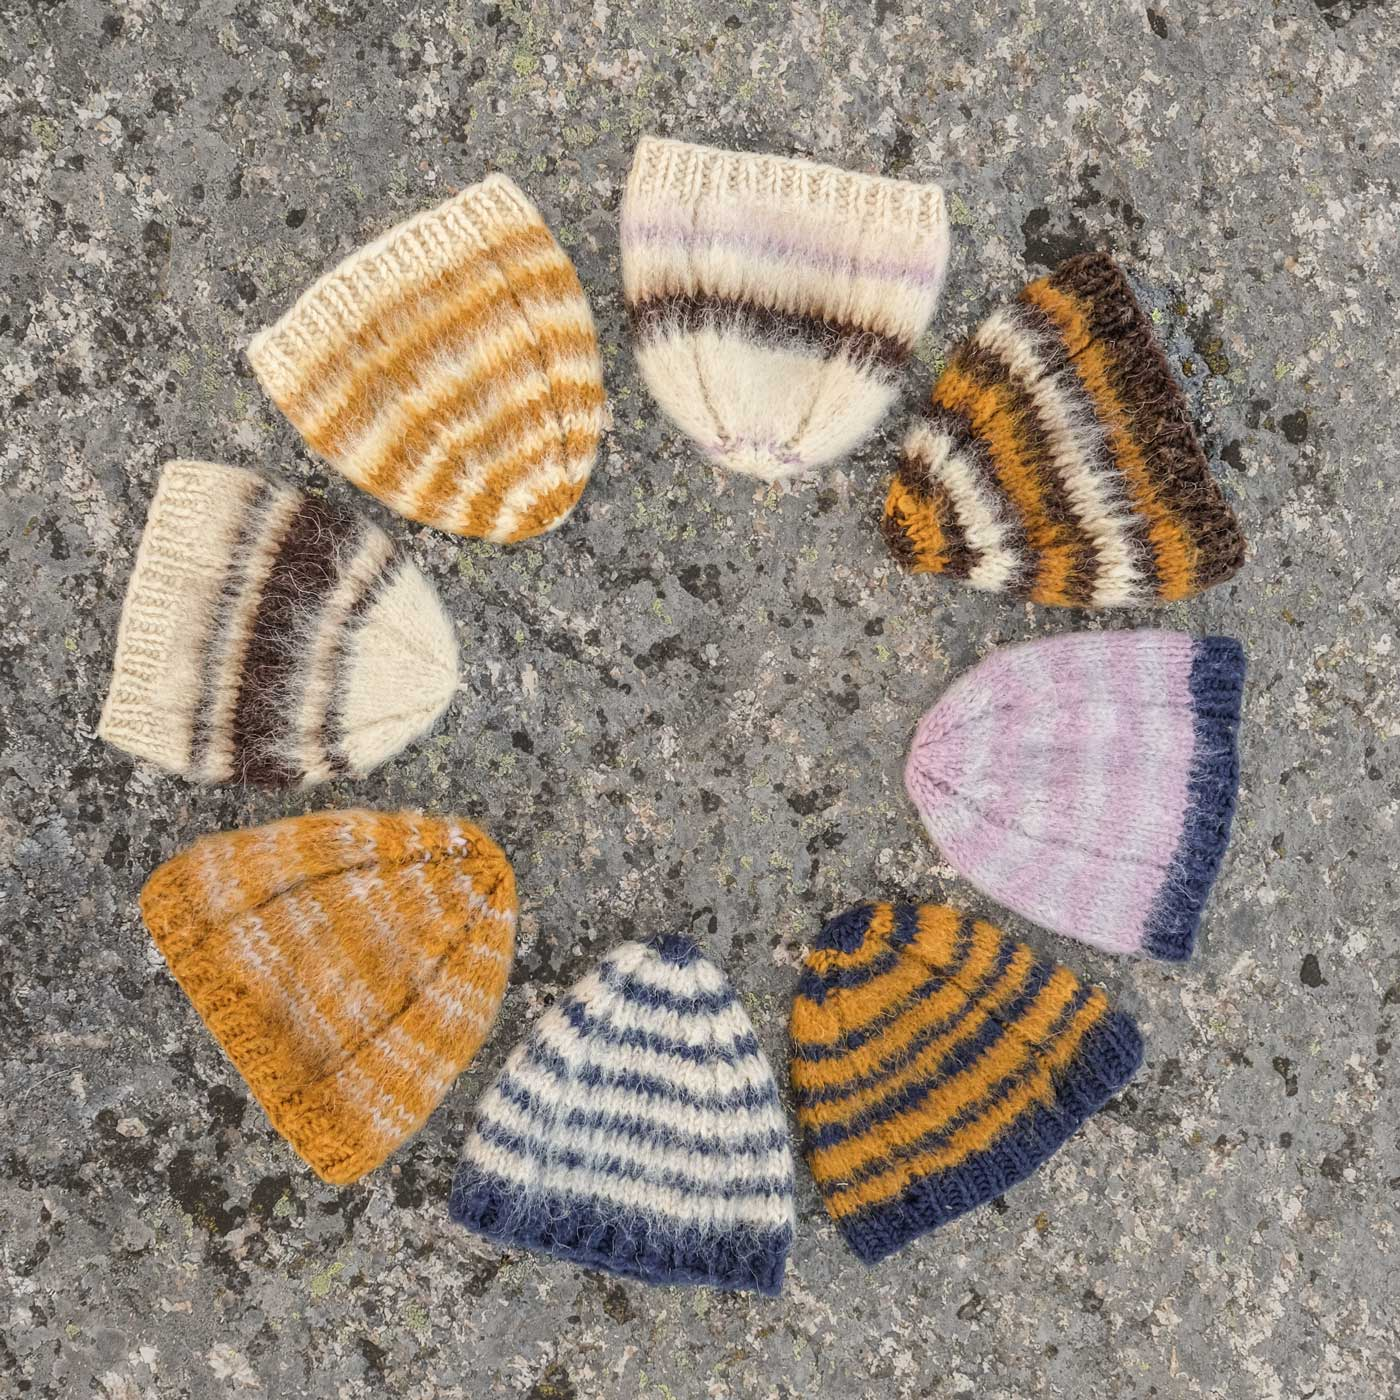 Seven Cobertor Caps laid down in a circle, each one is striped differently and they are a mix of colors.